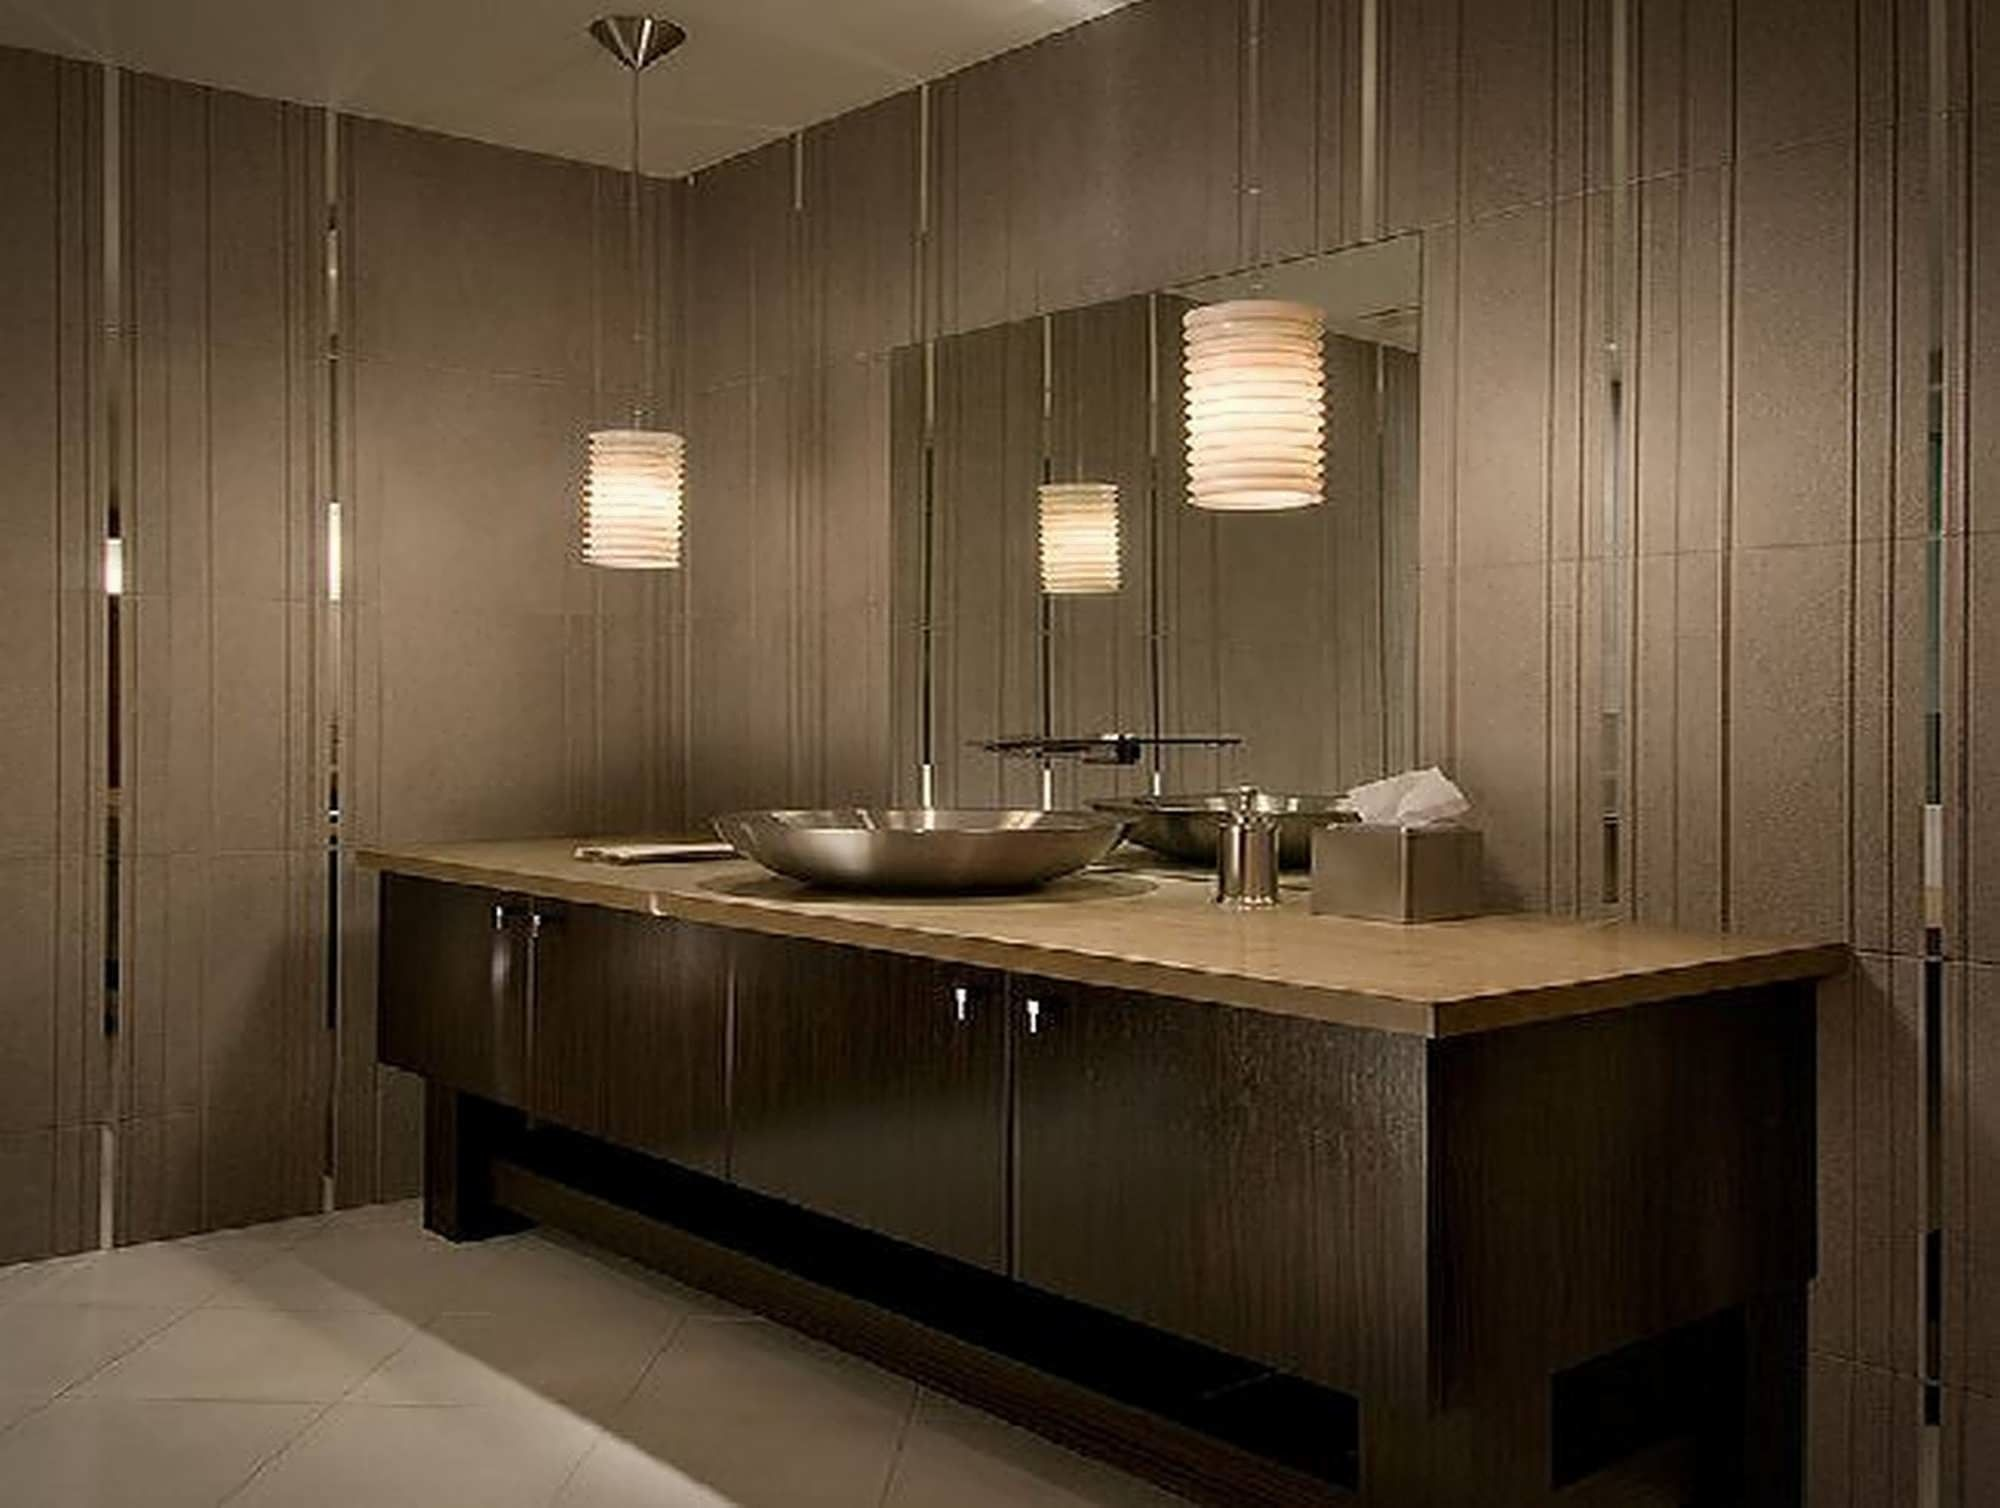 Bathrooms Designhome Depot Bathroom Fixtures Bath Fitters Prices Classy Bathroom Designers And Fitters Design Decoration